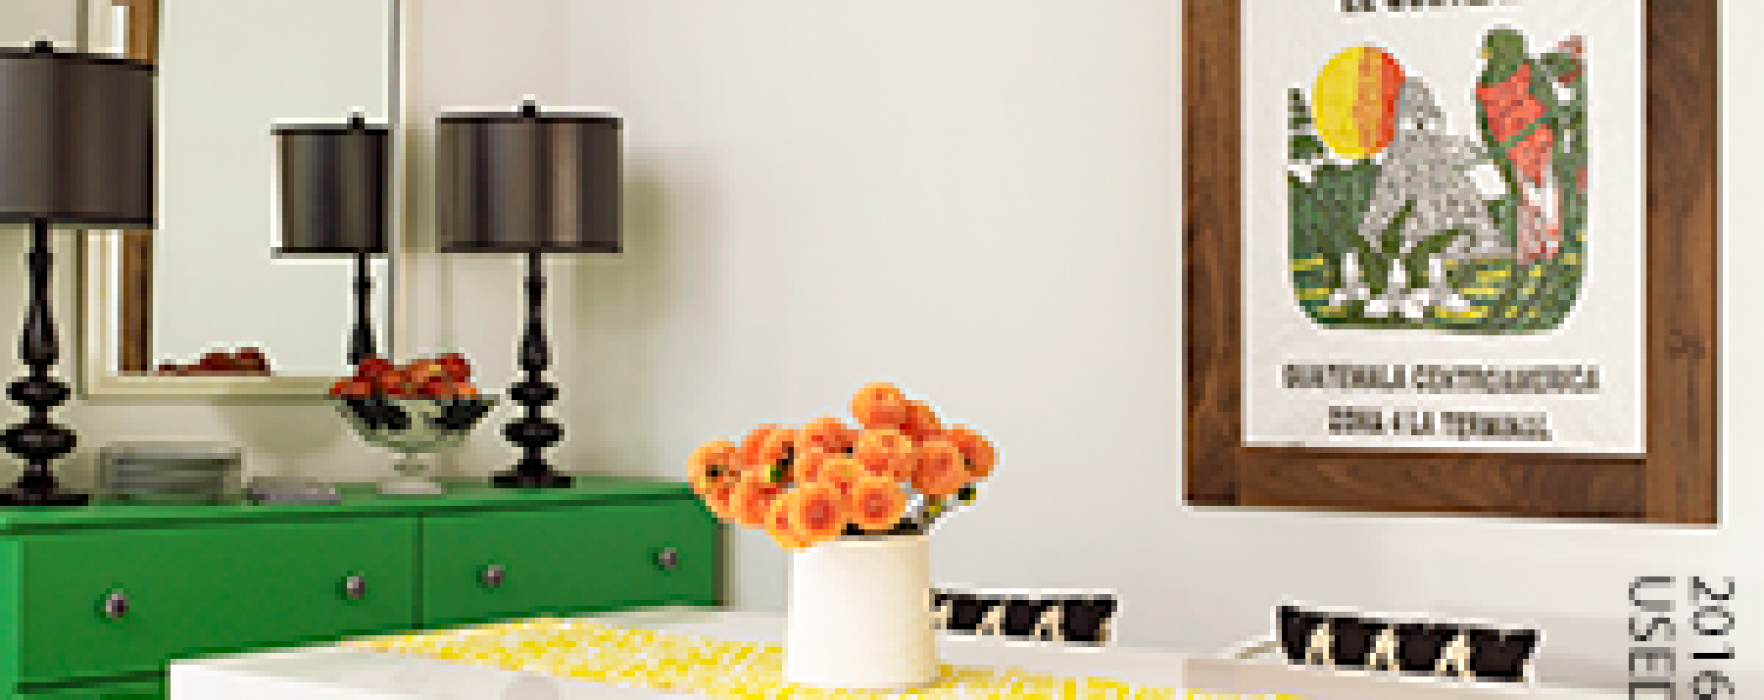 Easy, Budget-Friendly Design Fixes to Make Your House Feel More Welcoming